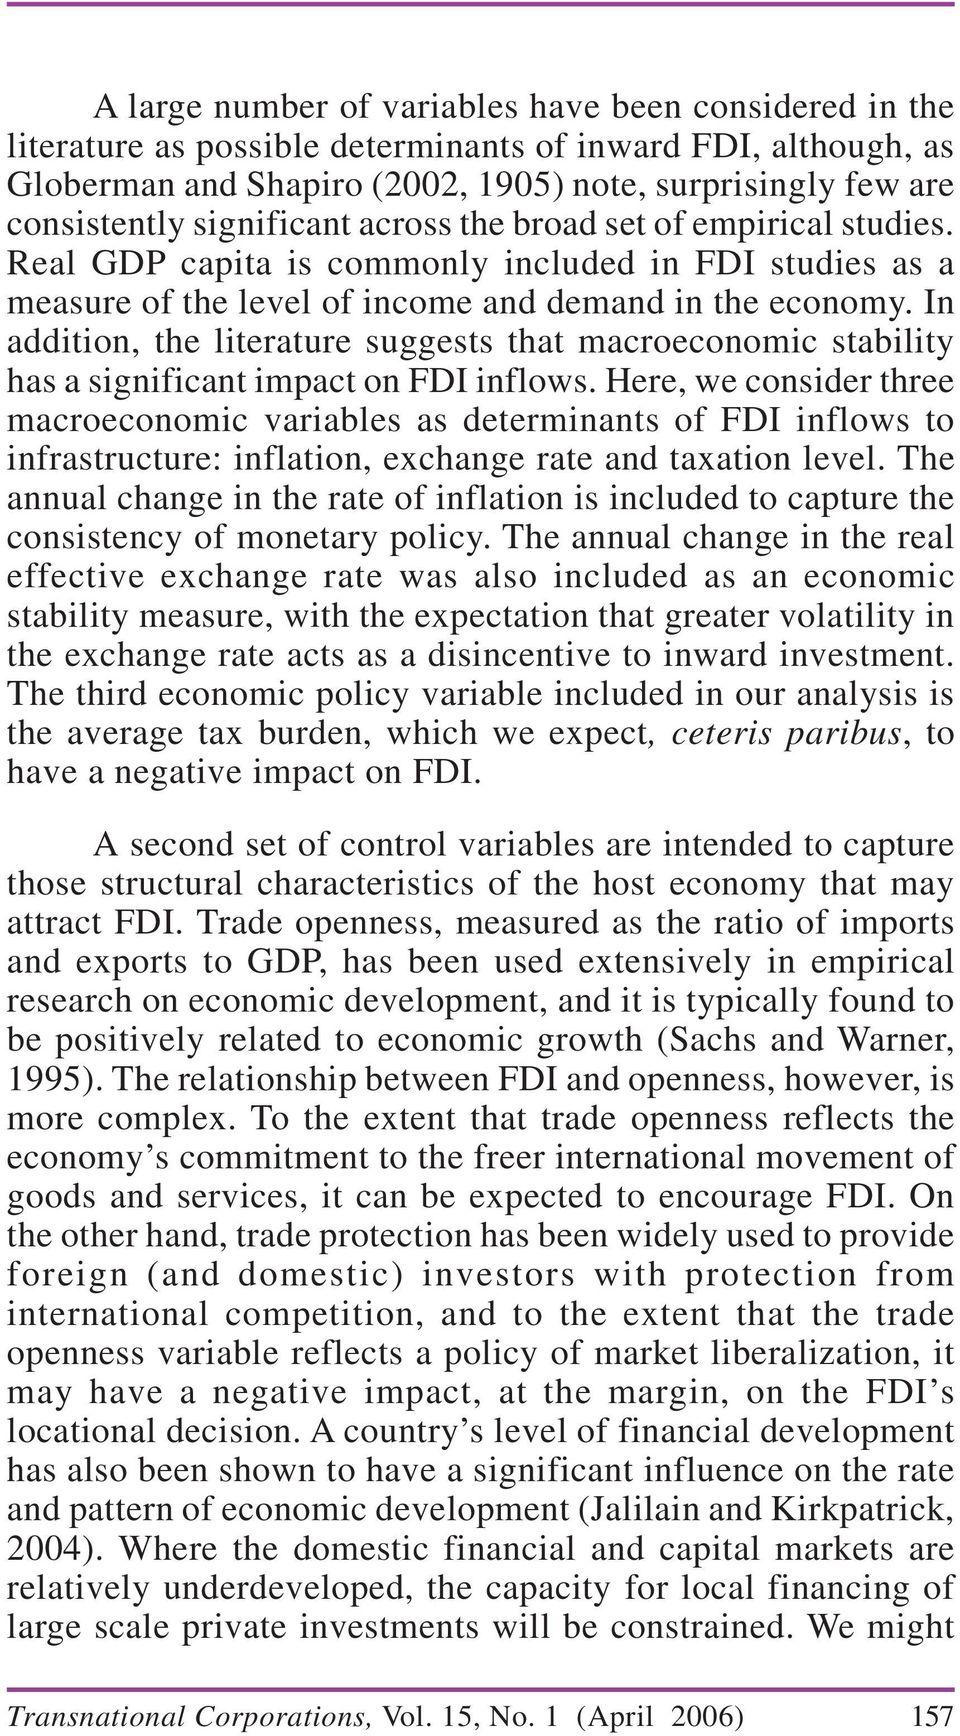 In addition, the literature suggests that macroeconomic stability has a significant impact on FDI inflows.